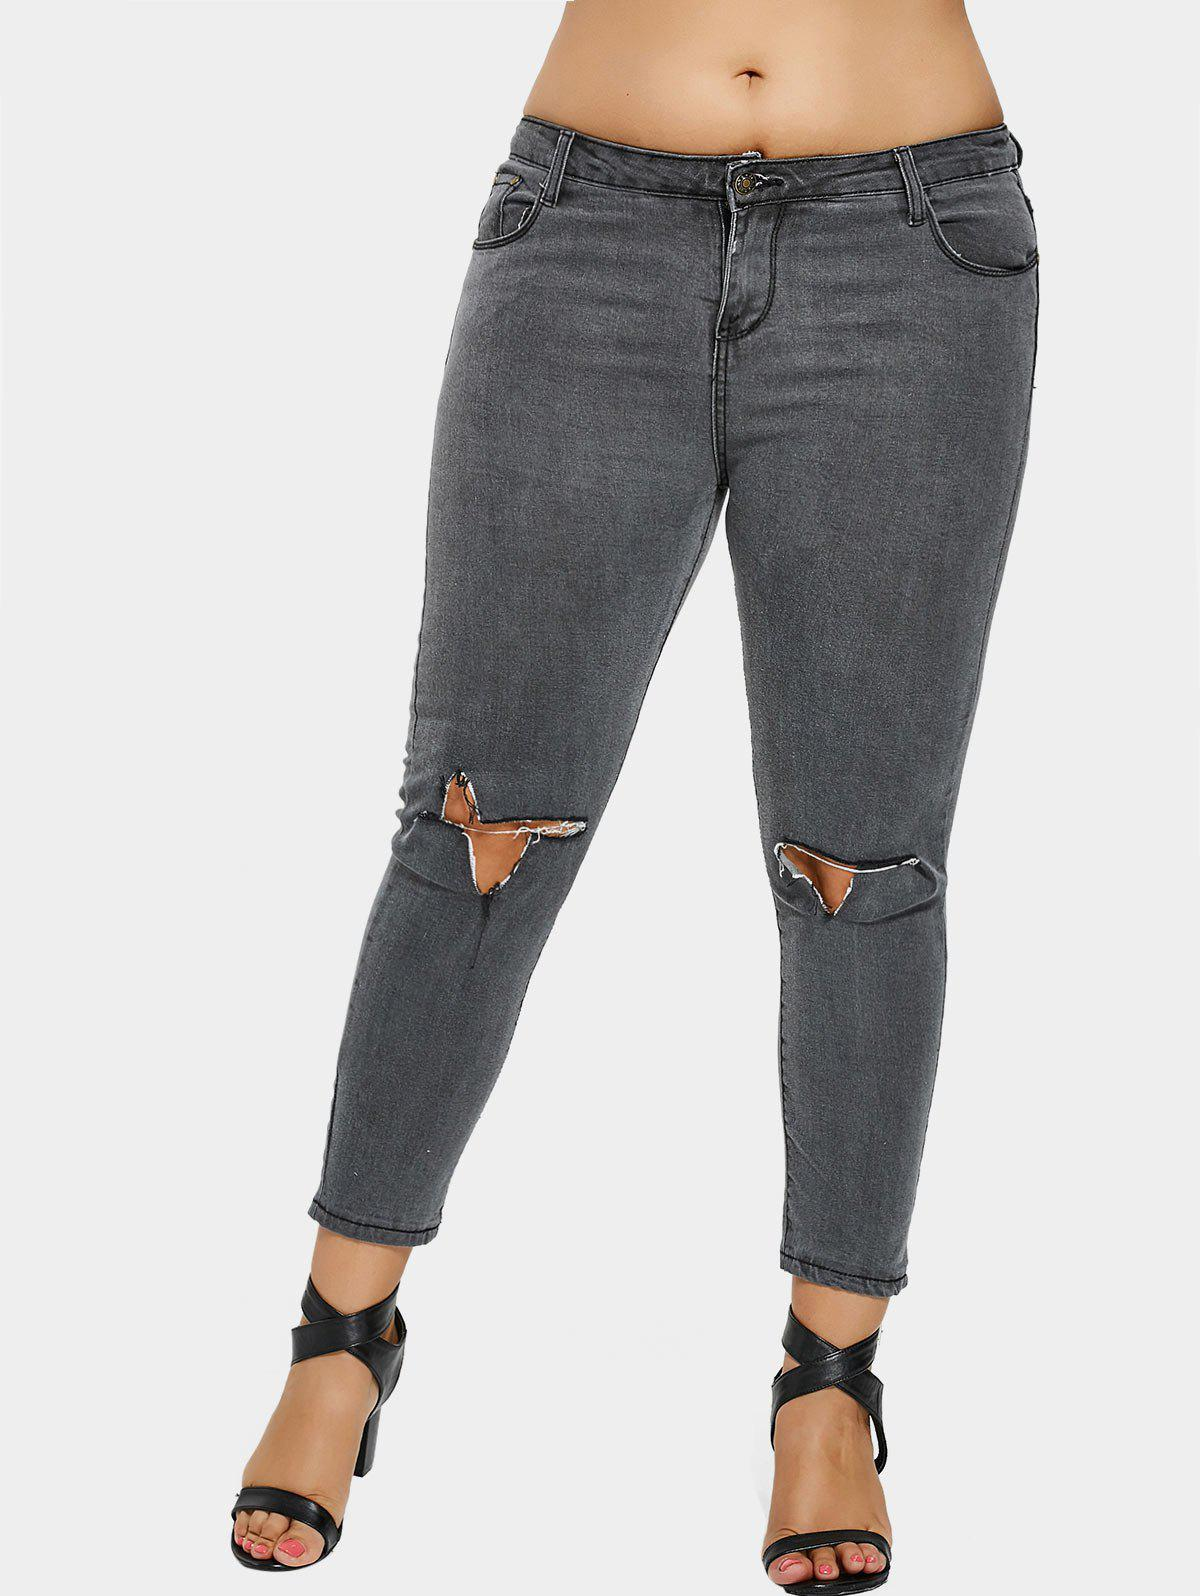 Zip Fly Plus Size Ripped Jeans - GRAY 3XL